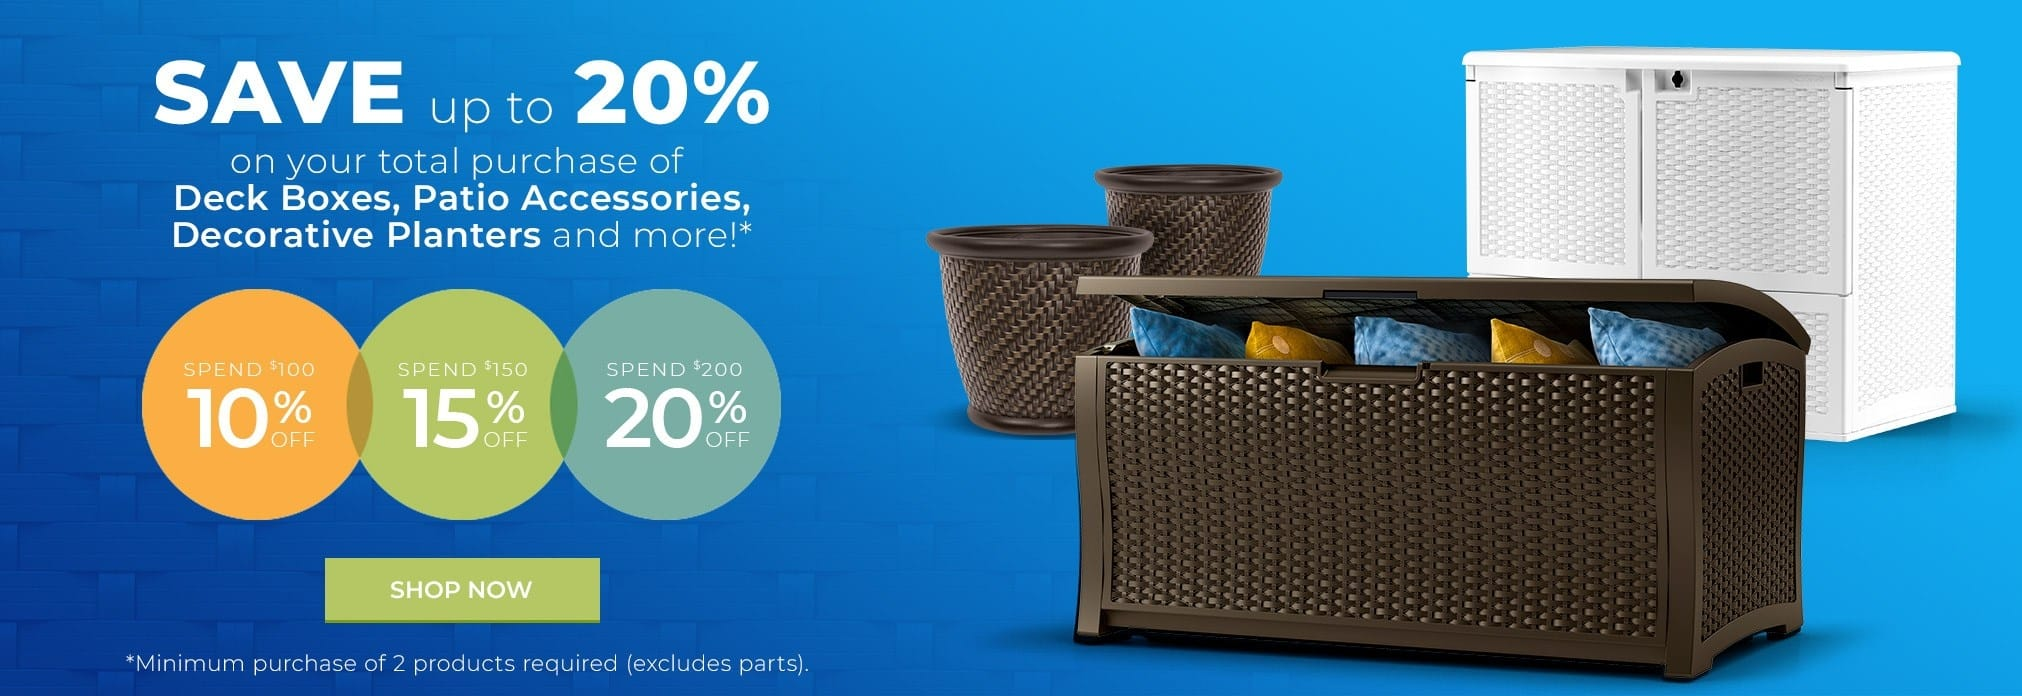 Save up to 20% on deck boxes, patio accessories, decorative planters and more